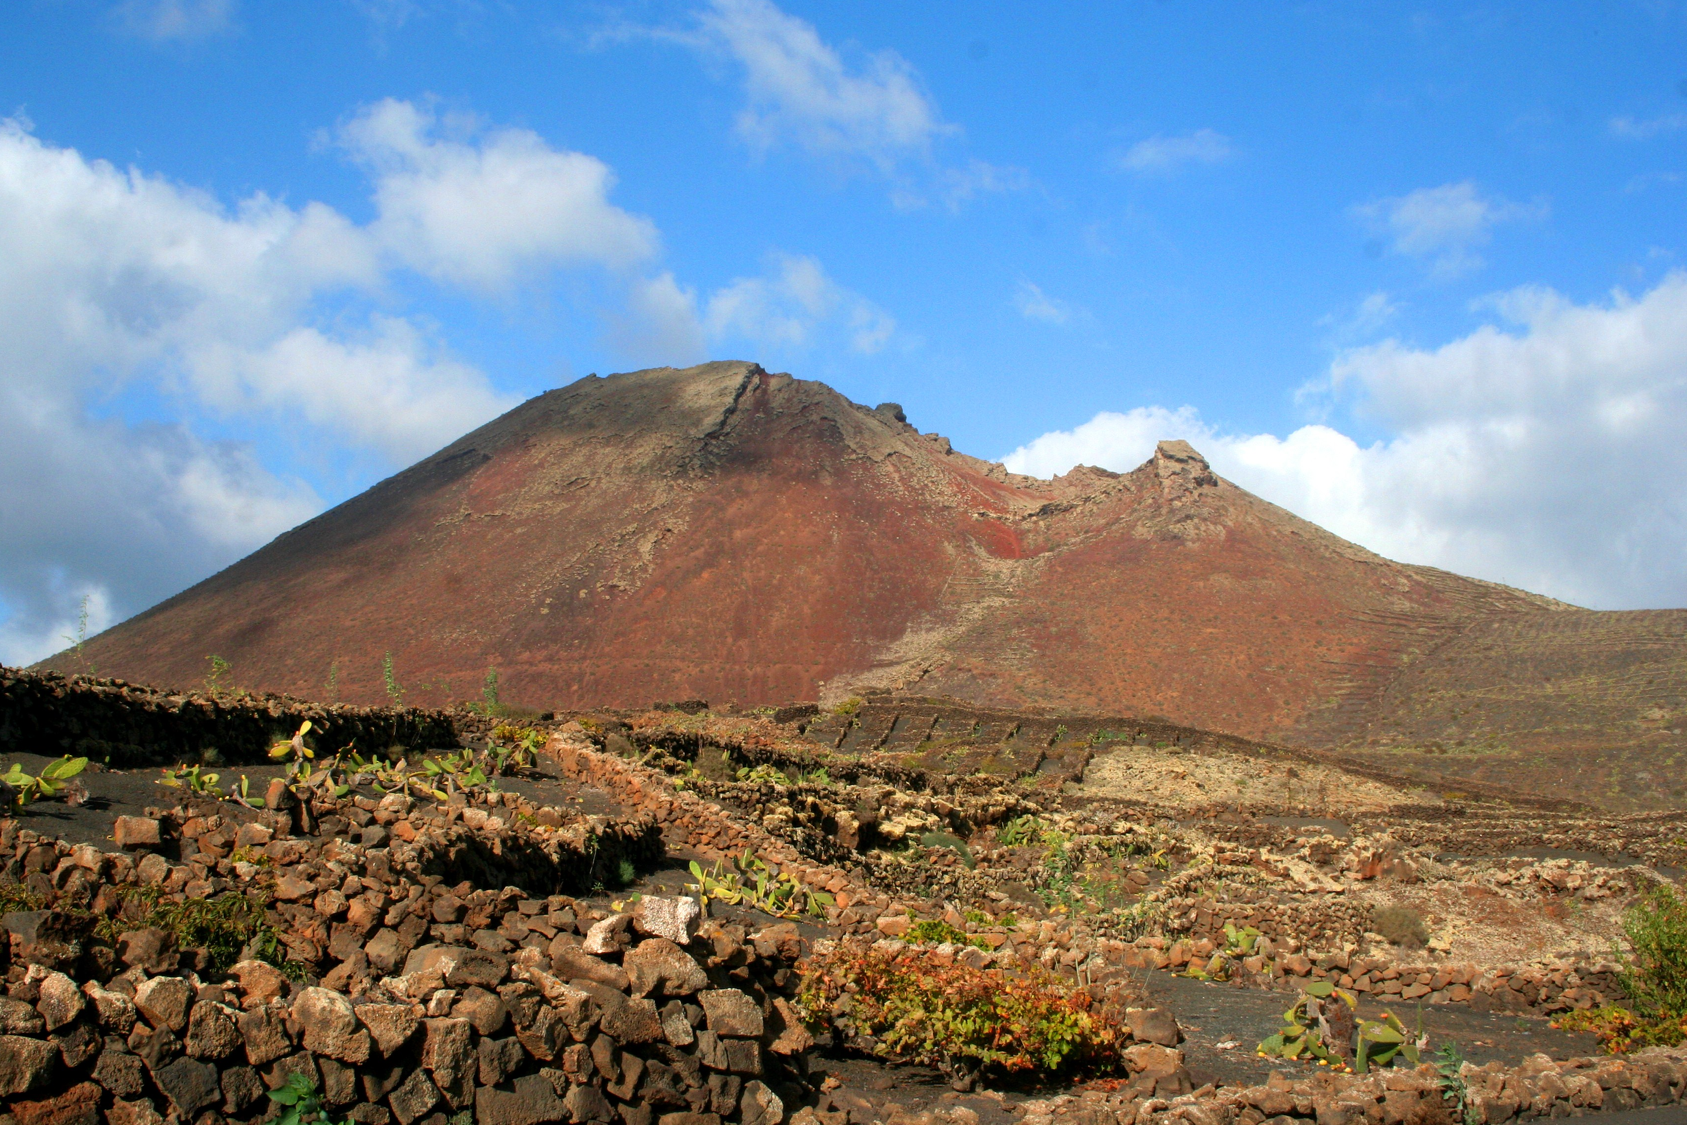 Fieldwork volcanology, geomorphology and natural hazards